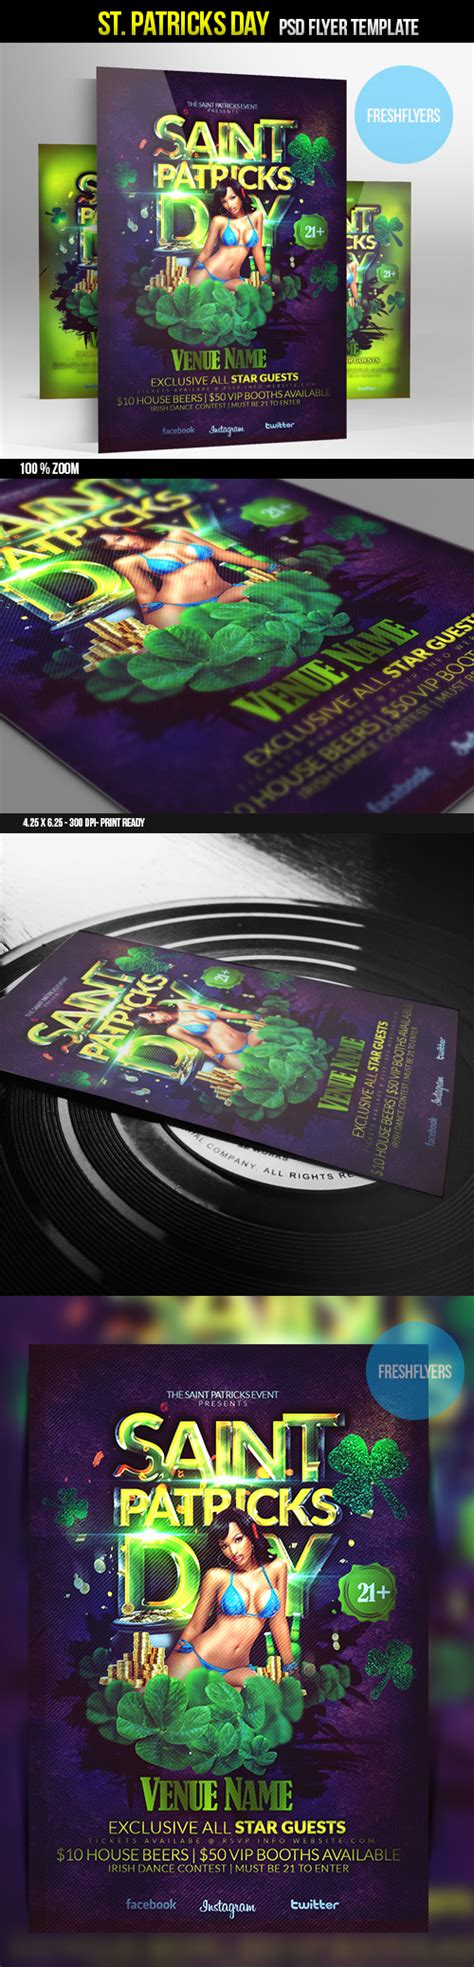 St Patrick S Day Psd Party Flyer Template By Imperialflyers On Deviantart St Photoshop Template